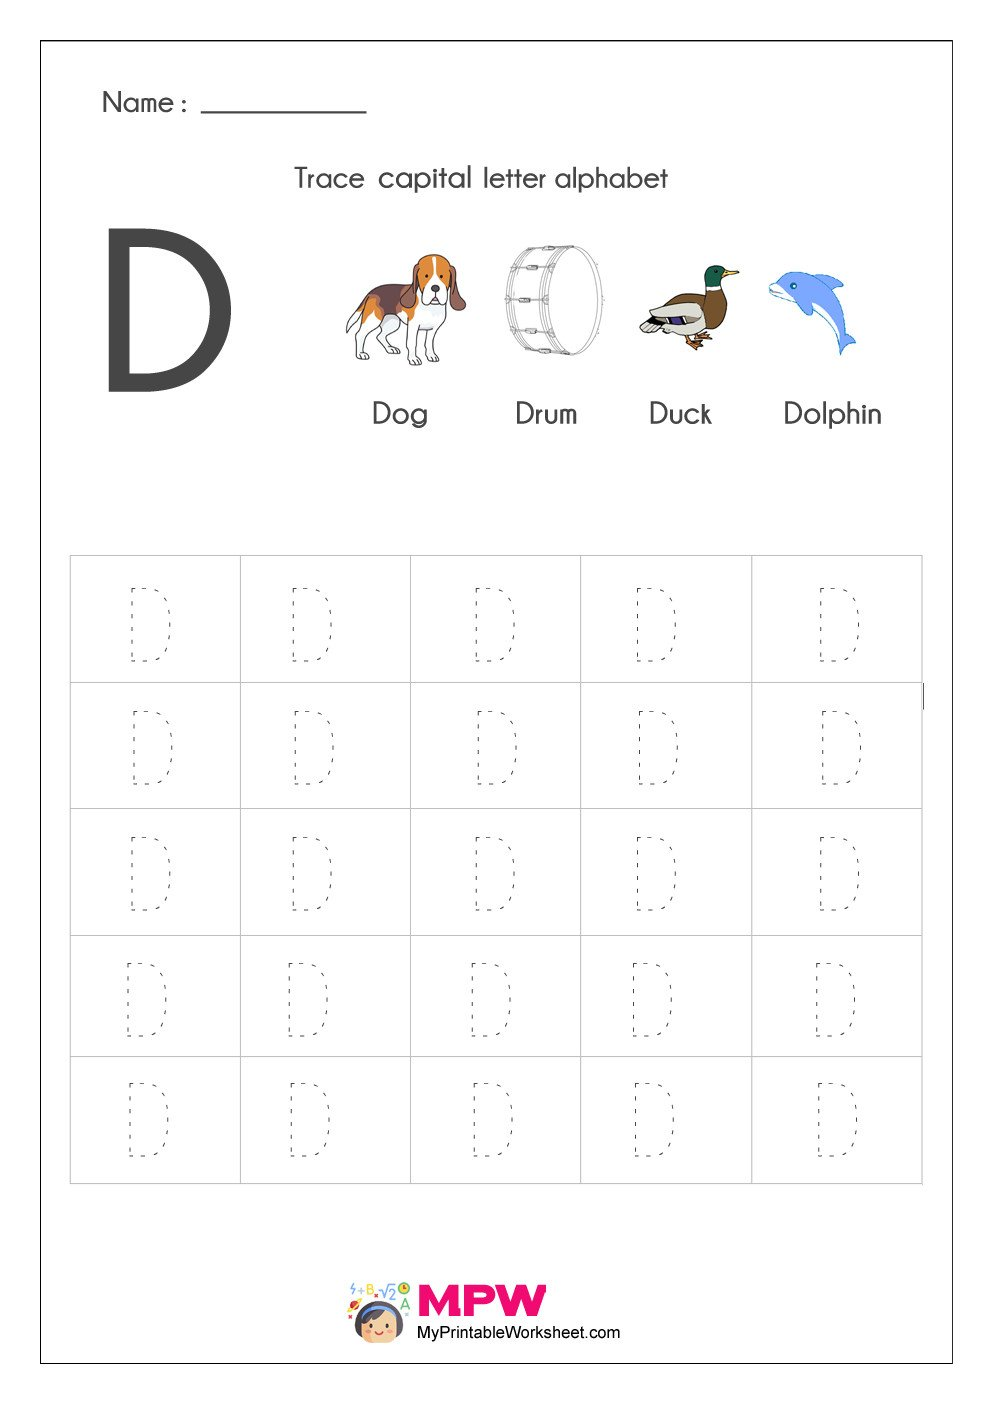 tracing capital letter D